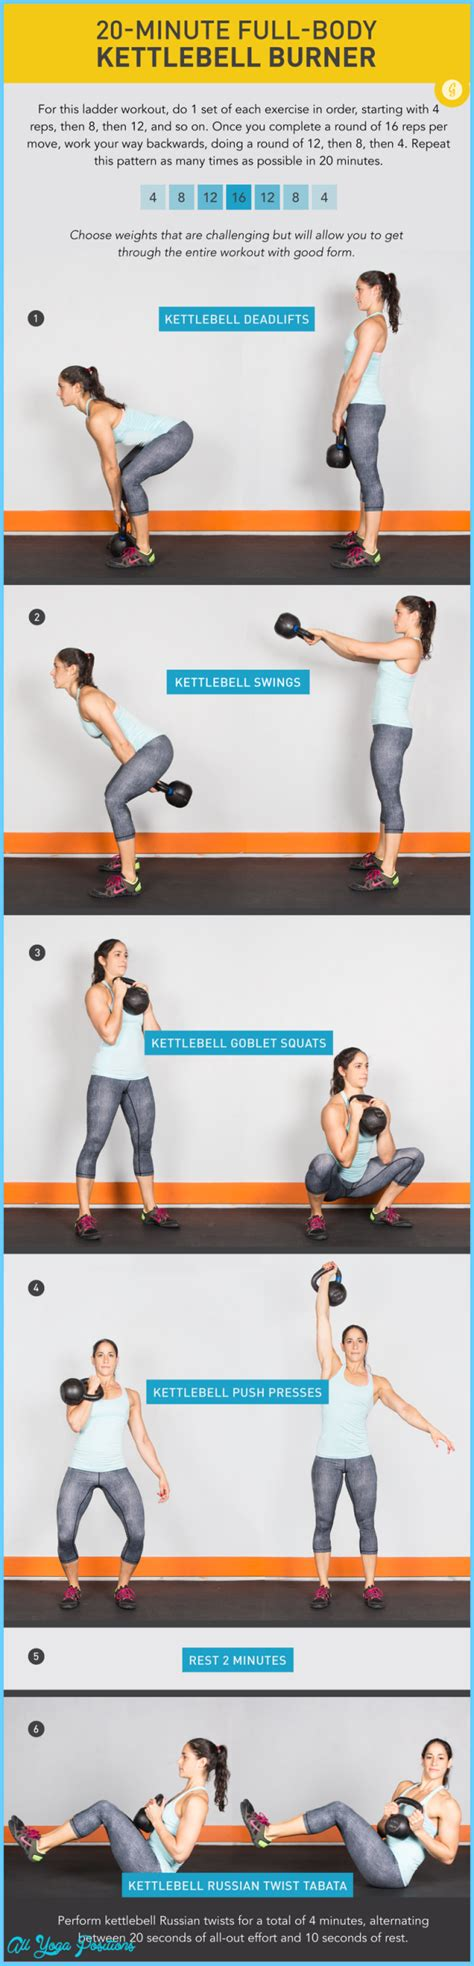 body lower kettlebell exercises allyogapositions